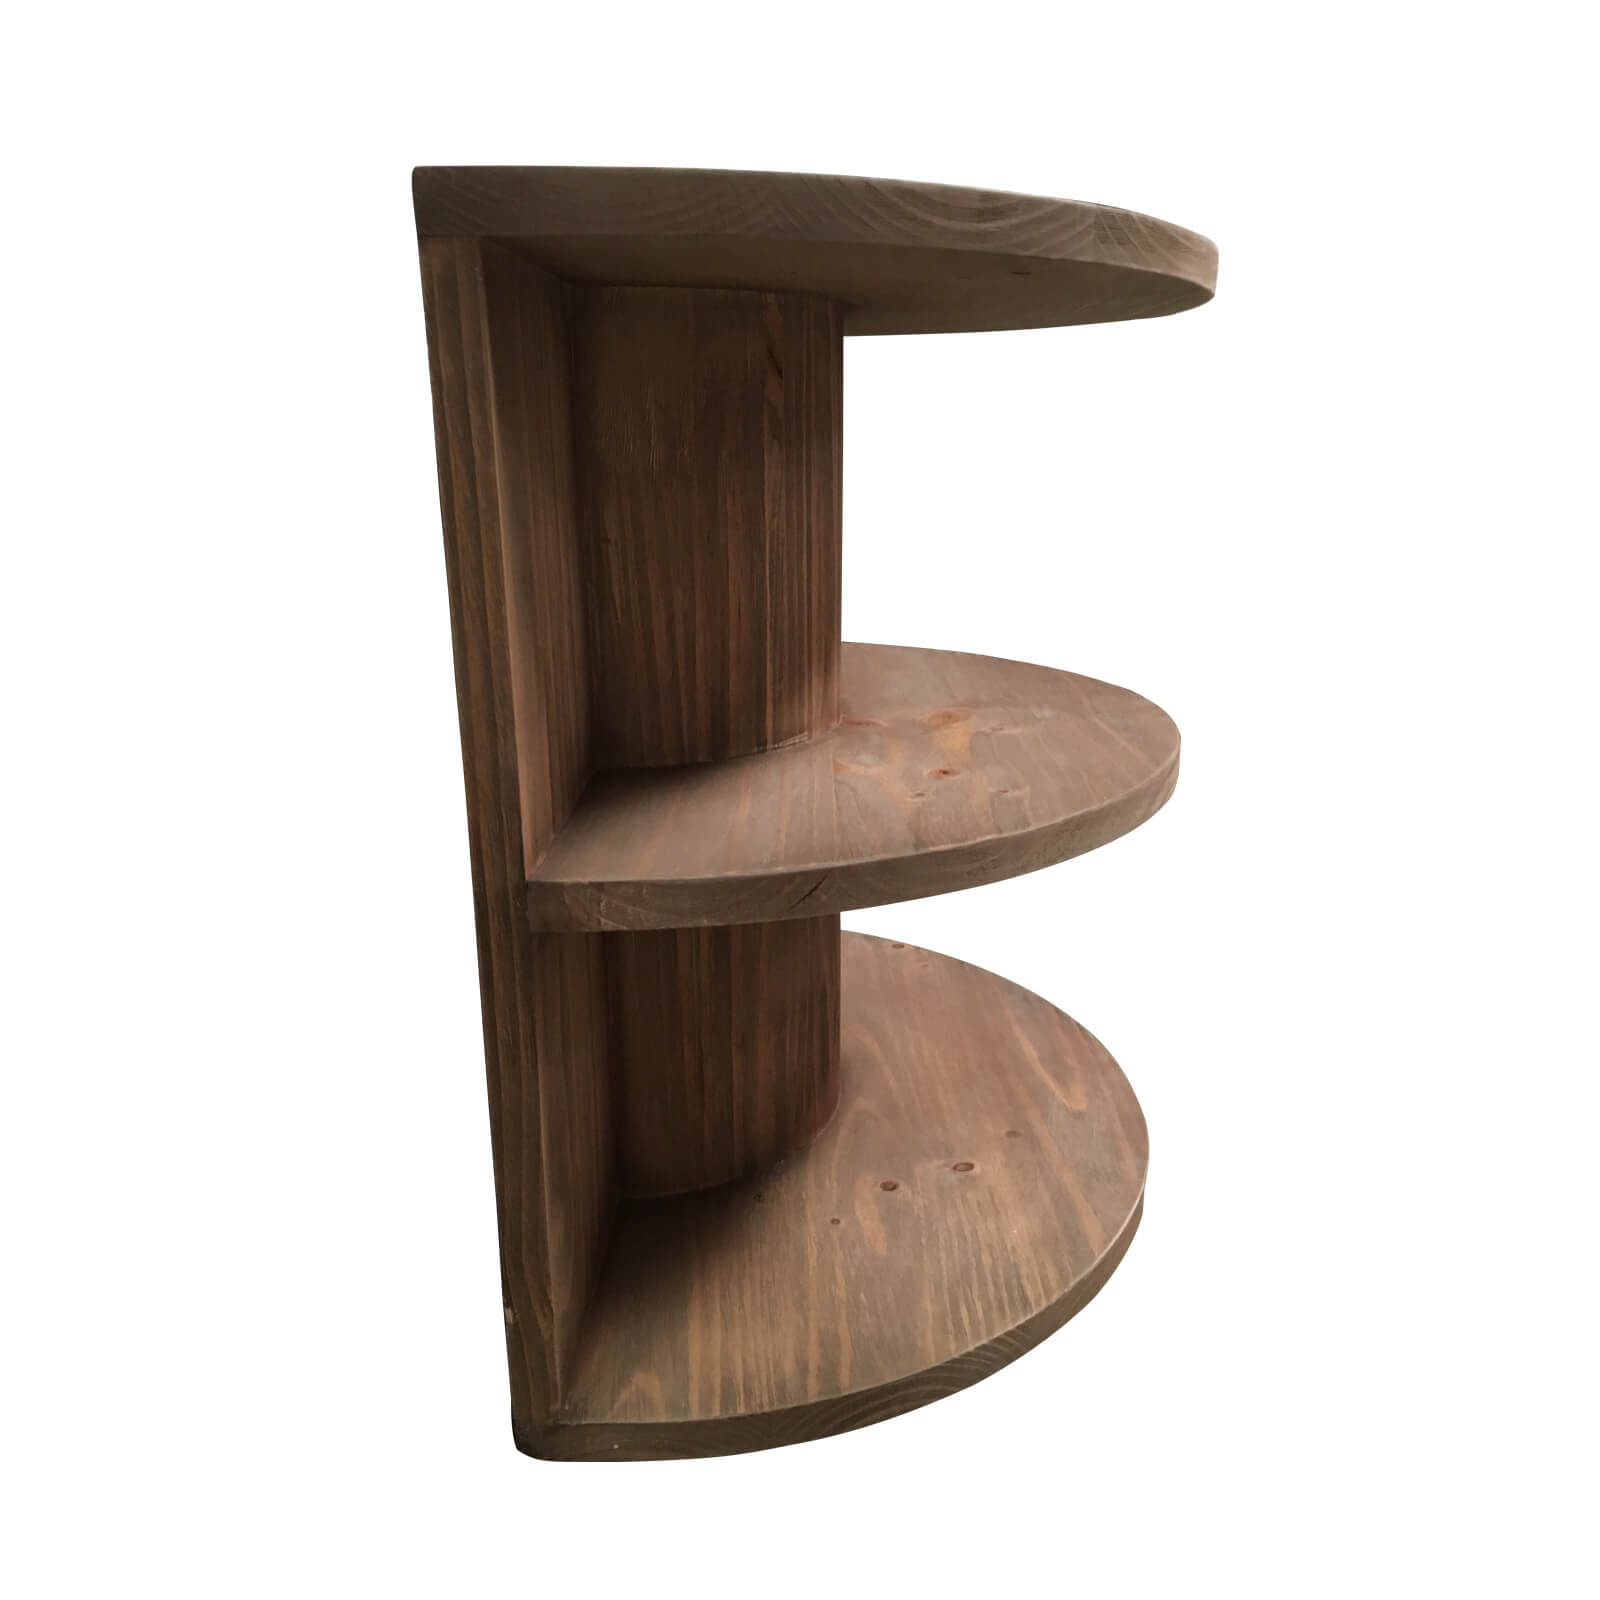 Two Design Lovers Parker timber side table